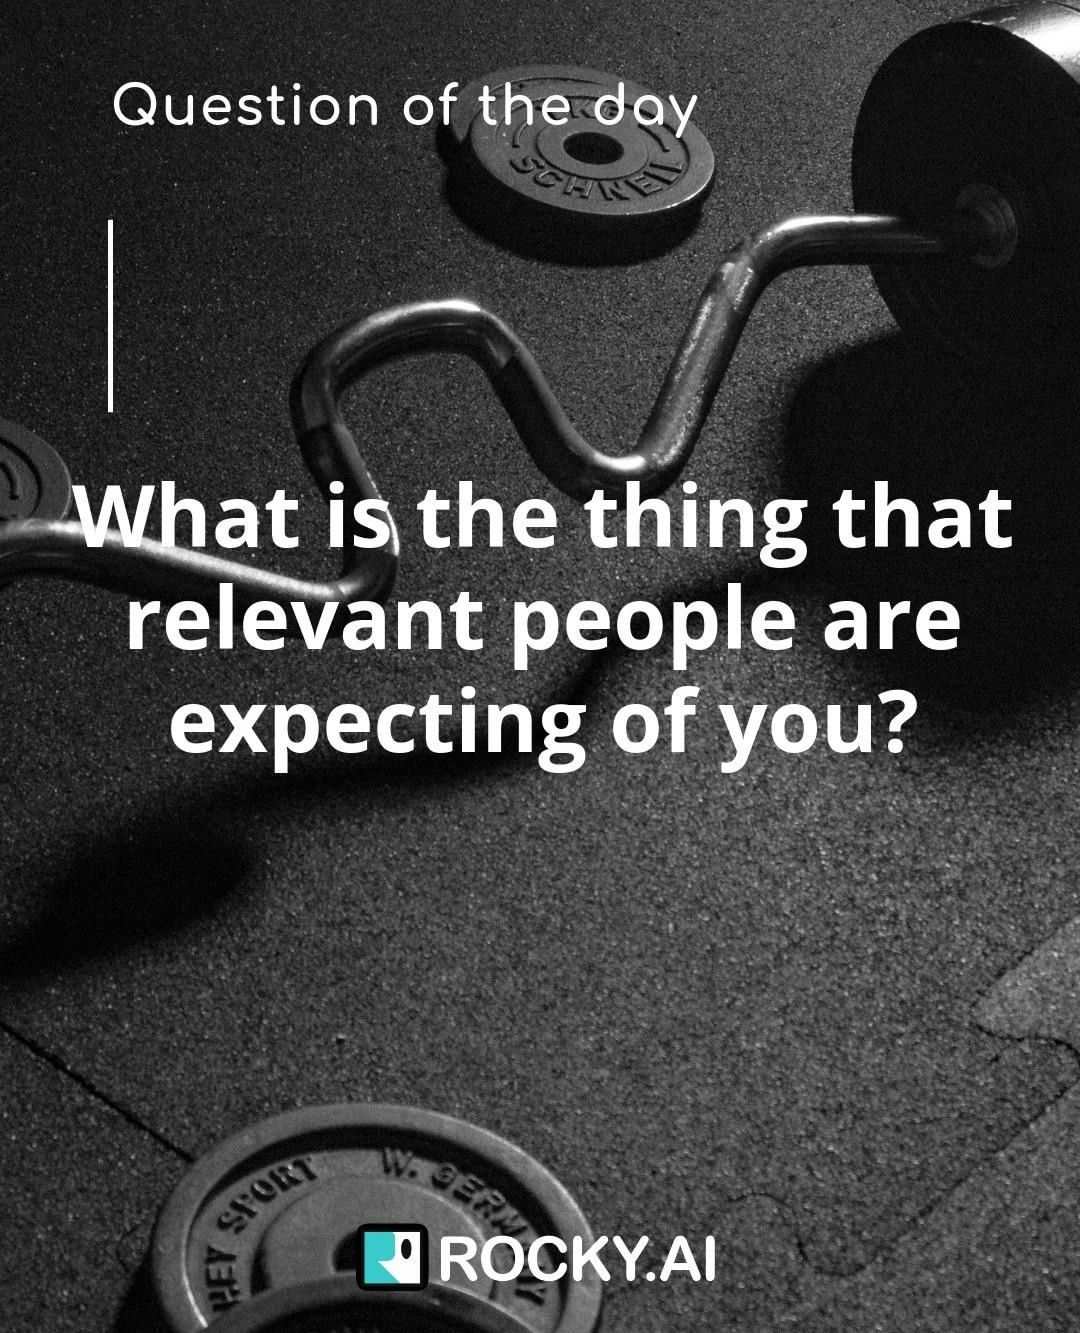 What is the thing that relevant people are expecting of you today?